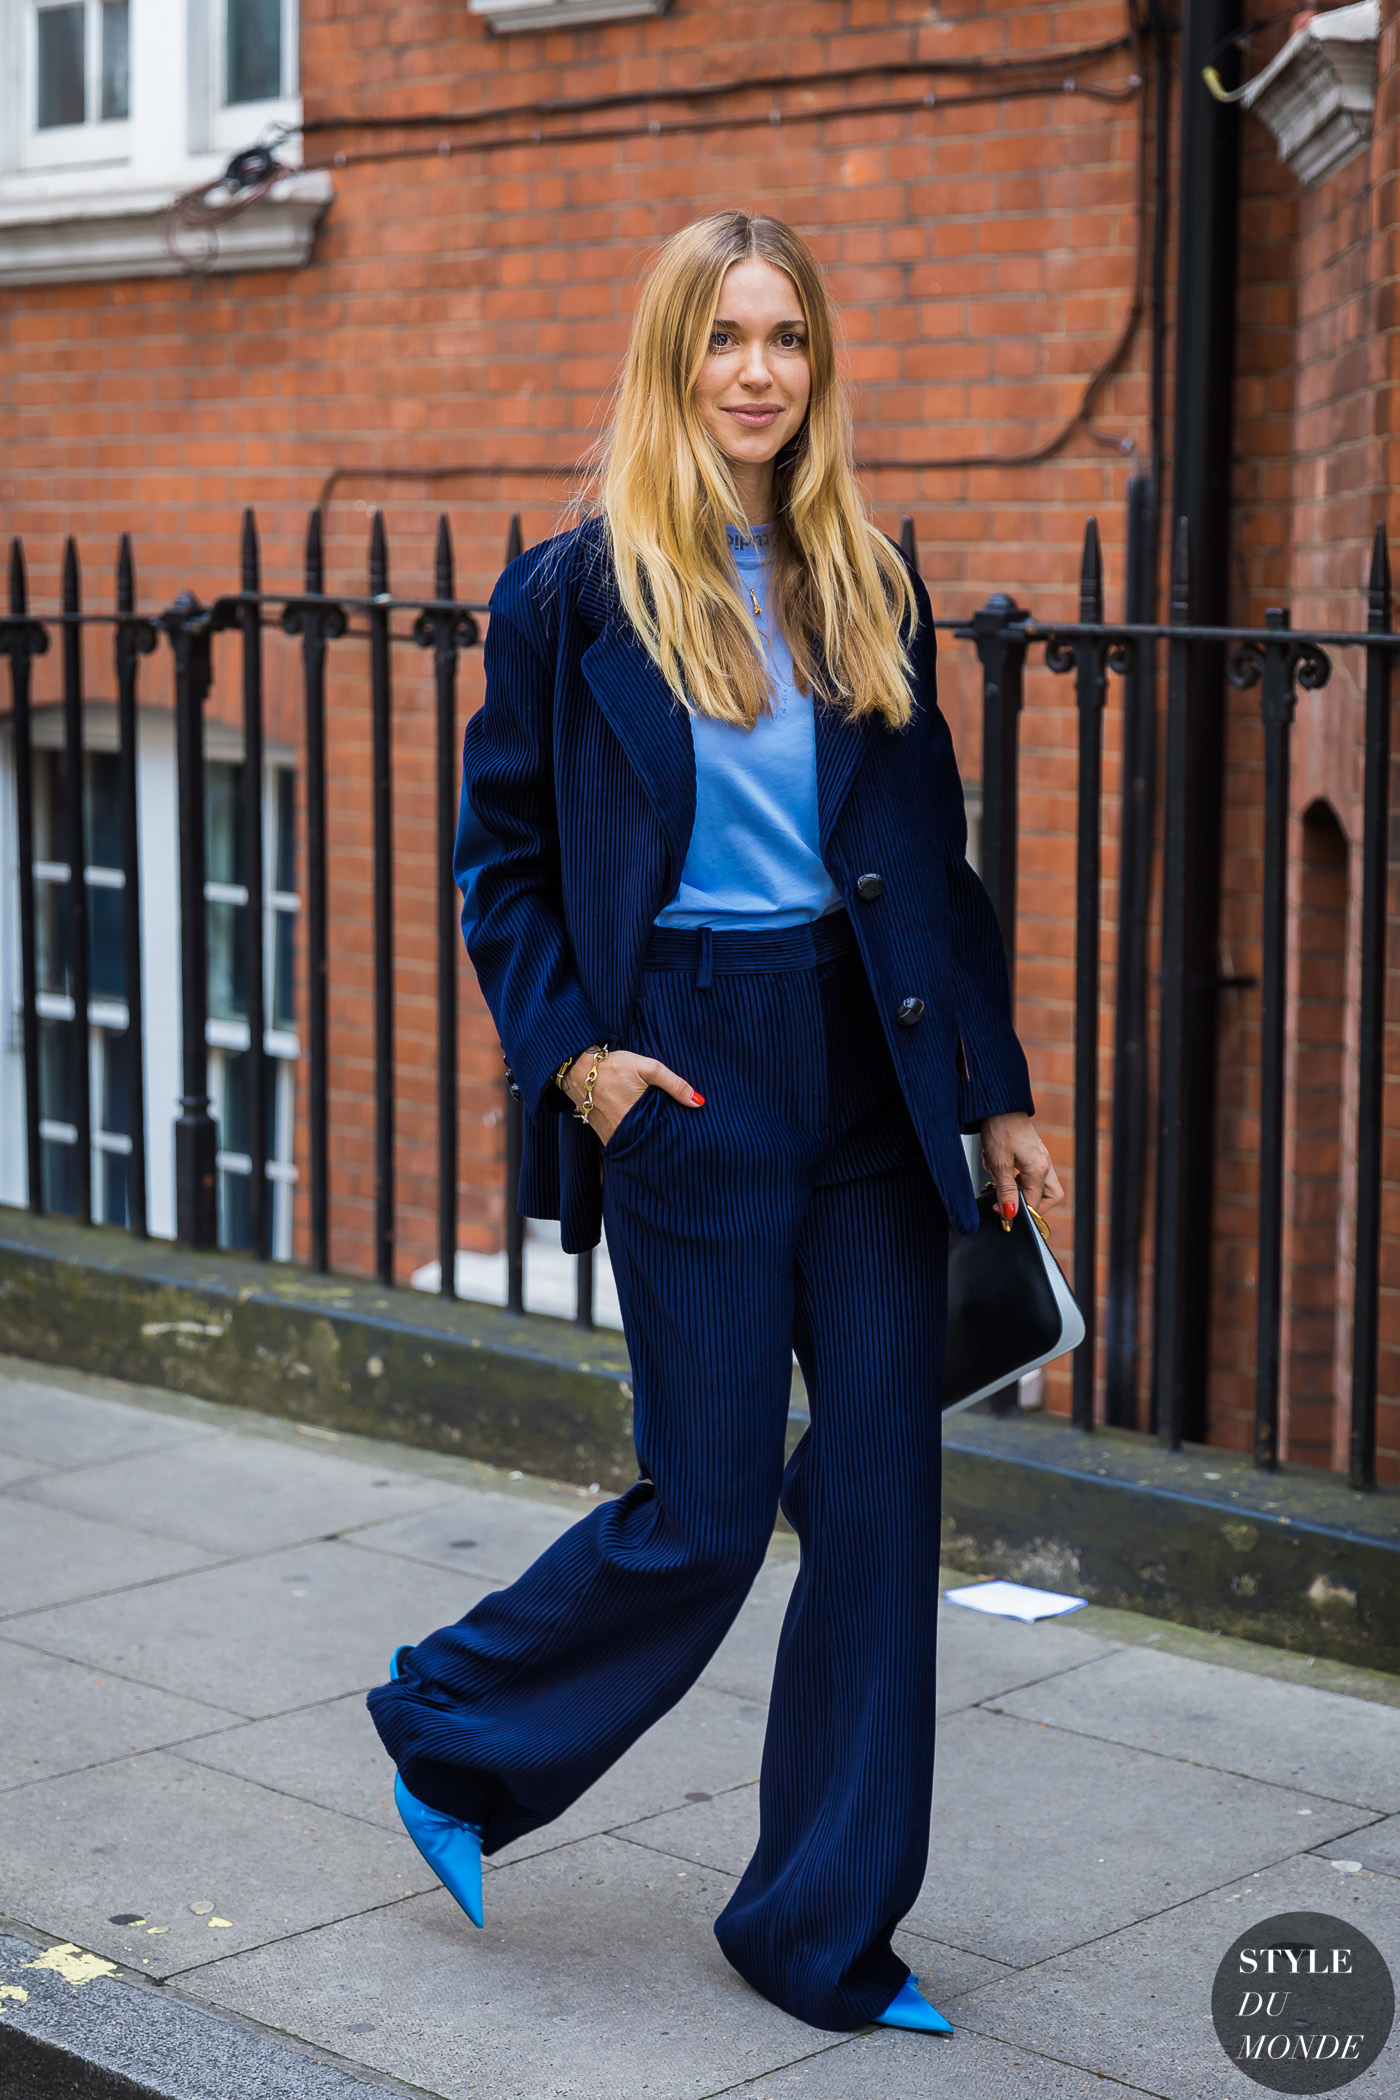 Pernille Teisbaek by STYLEDUMONDE Street Style Fashion Photography